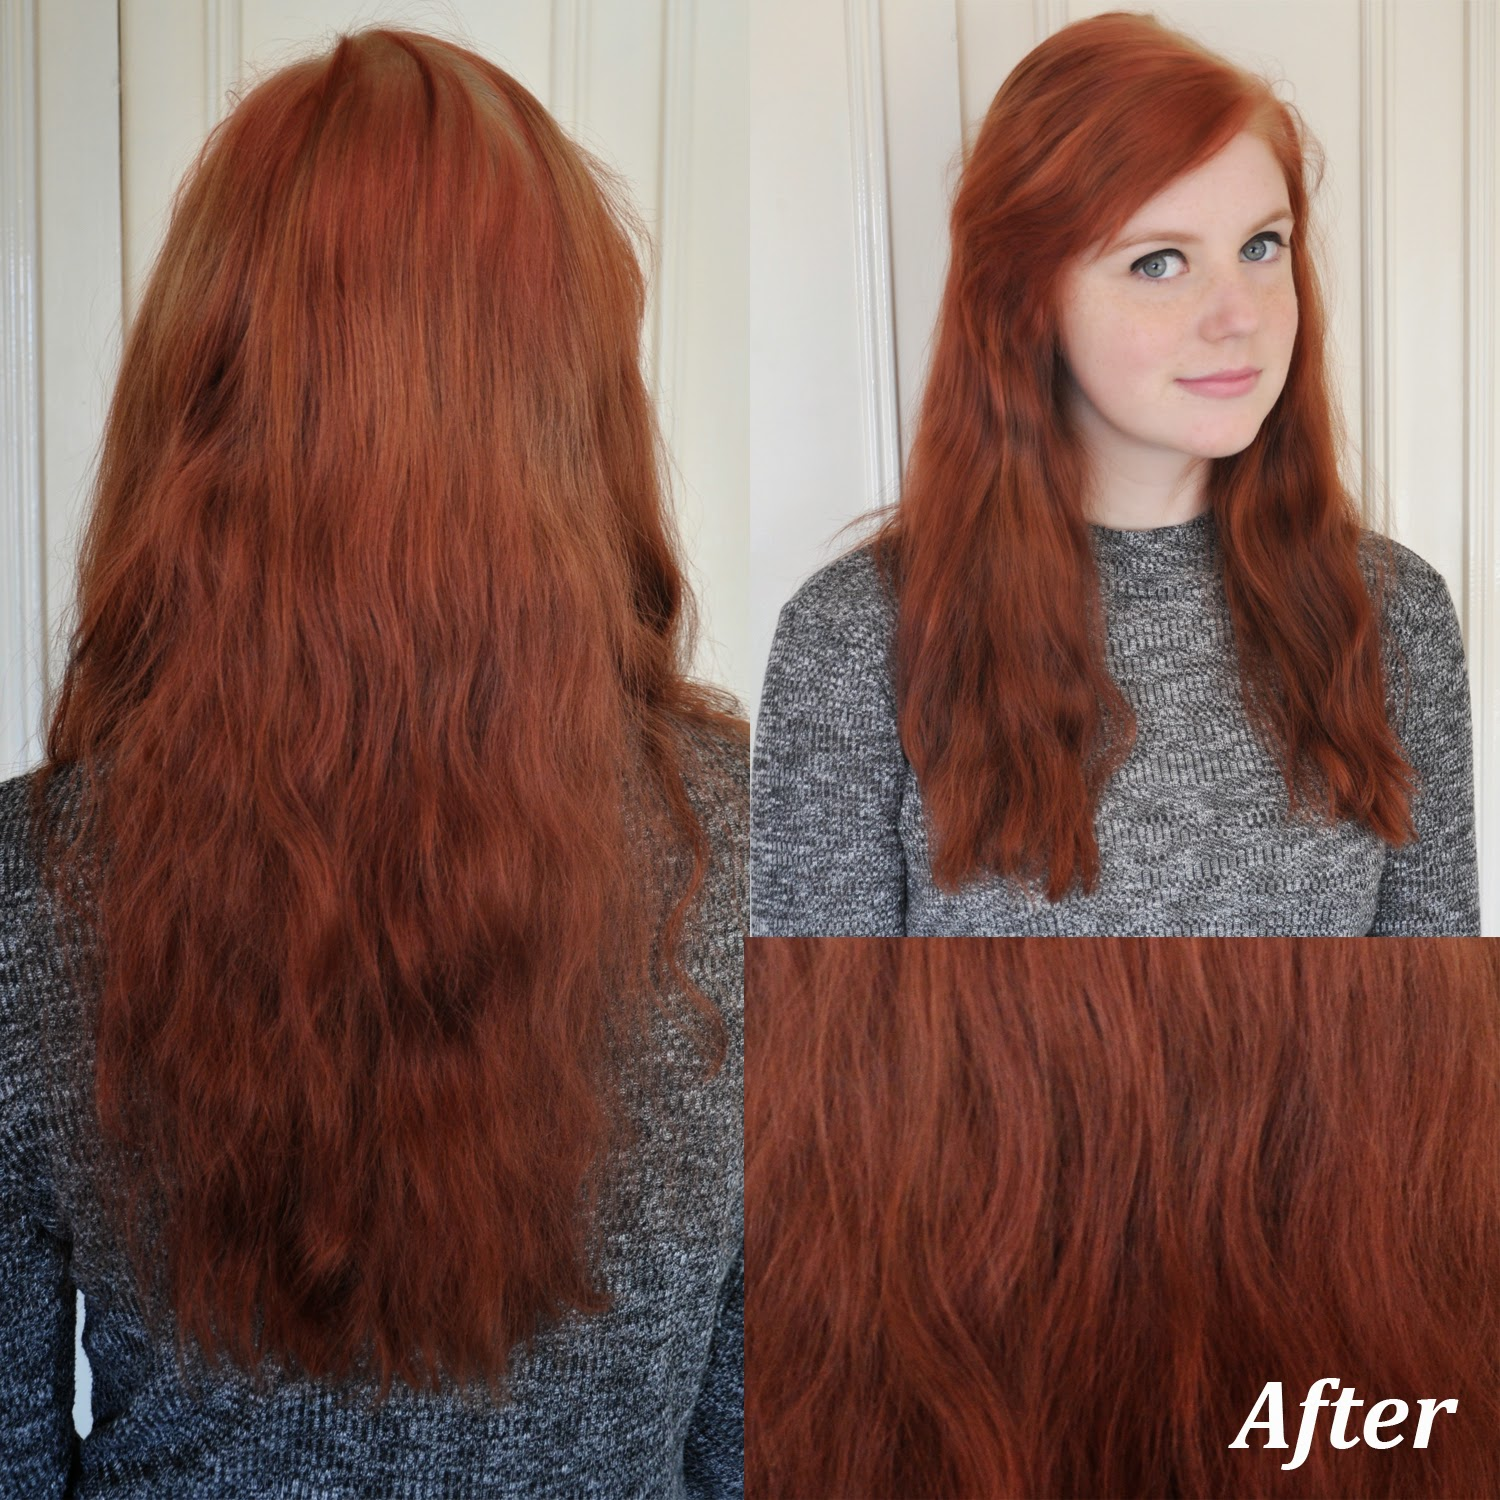 Stripping Hair Color Before And After